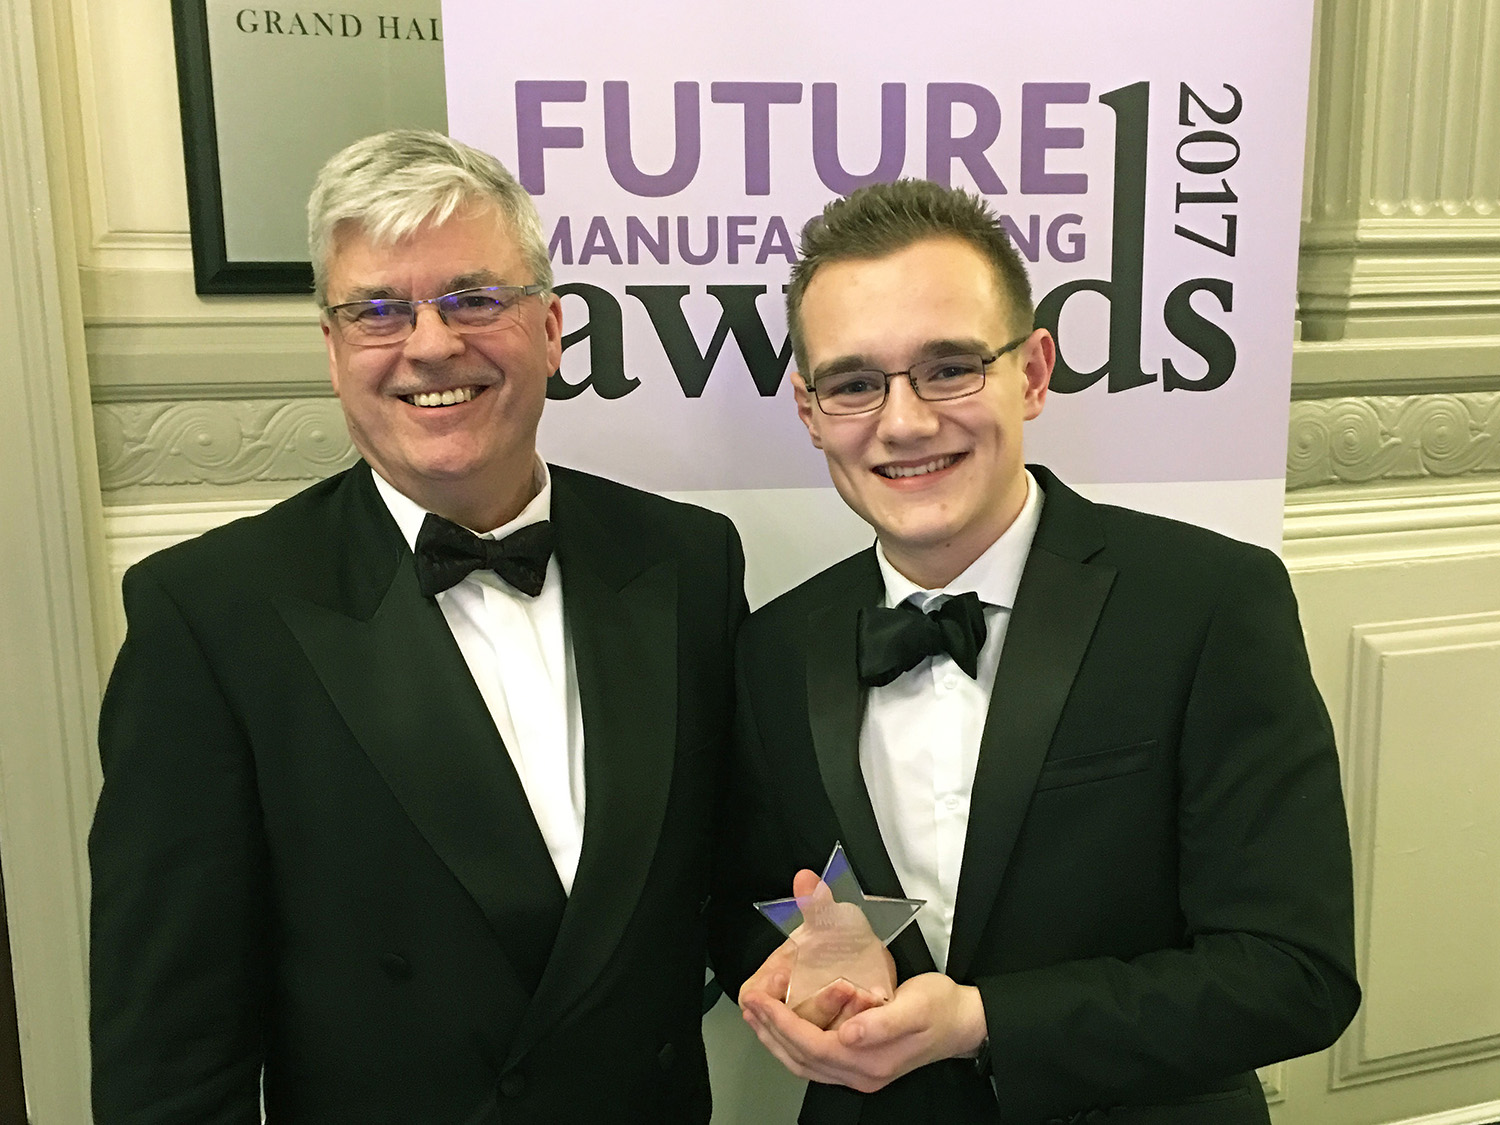 Ashley Hopwell named Rising Star at EEF Future of Manufacturing Awards